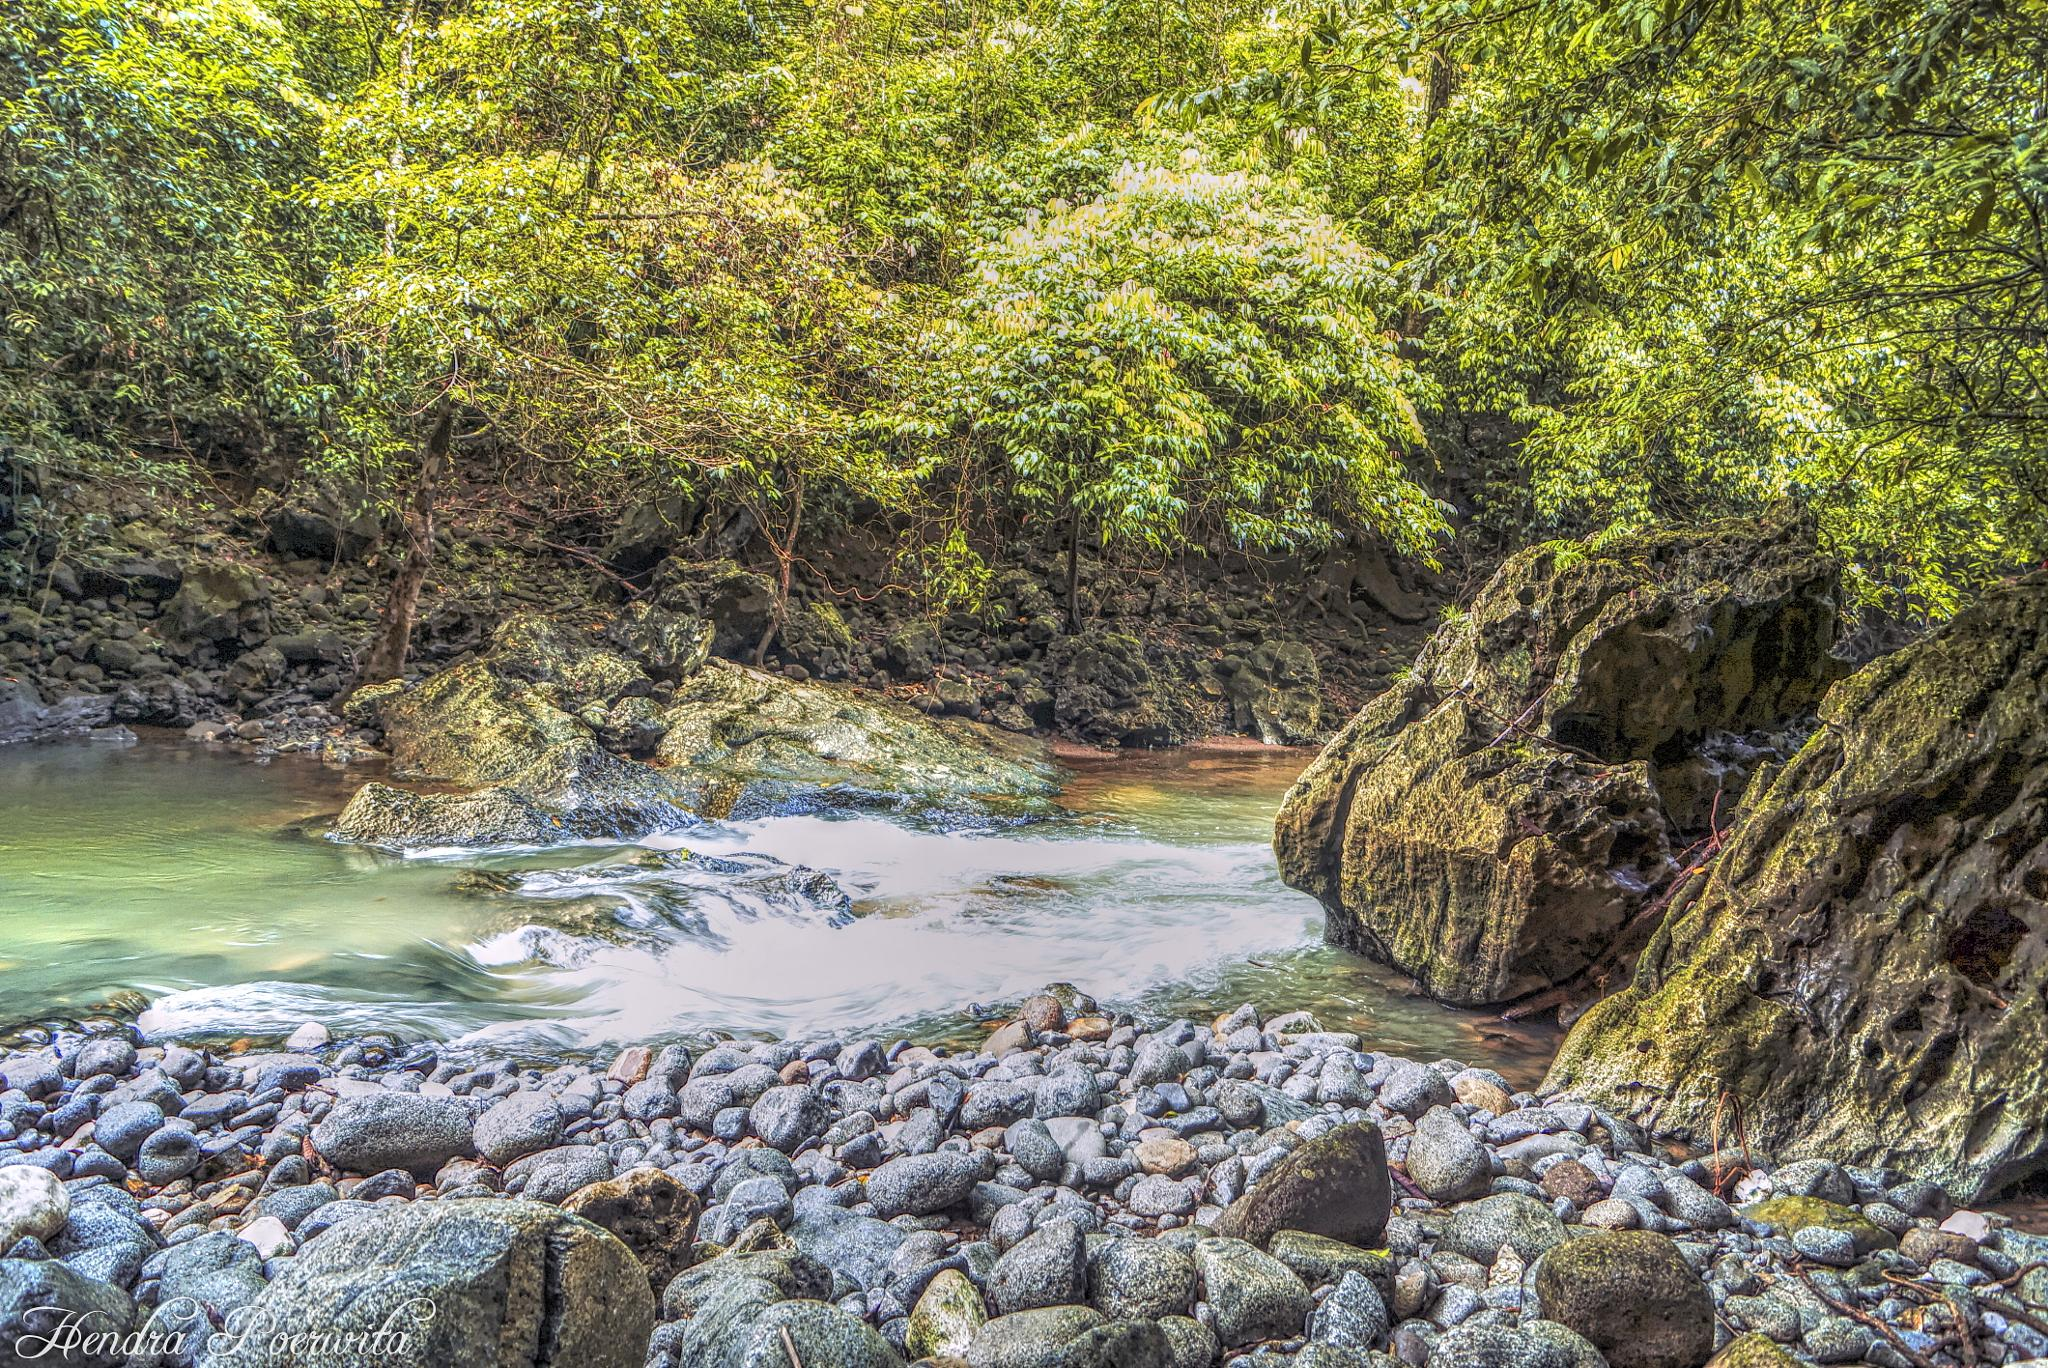 SHALLOW RIVER by hendra.poerwita